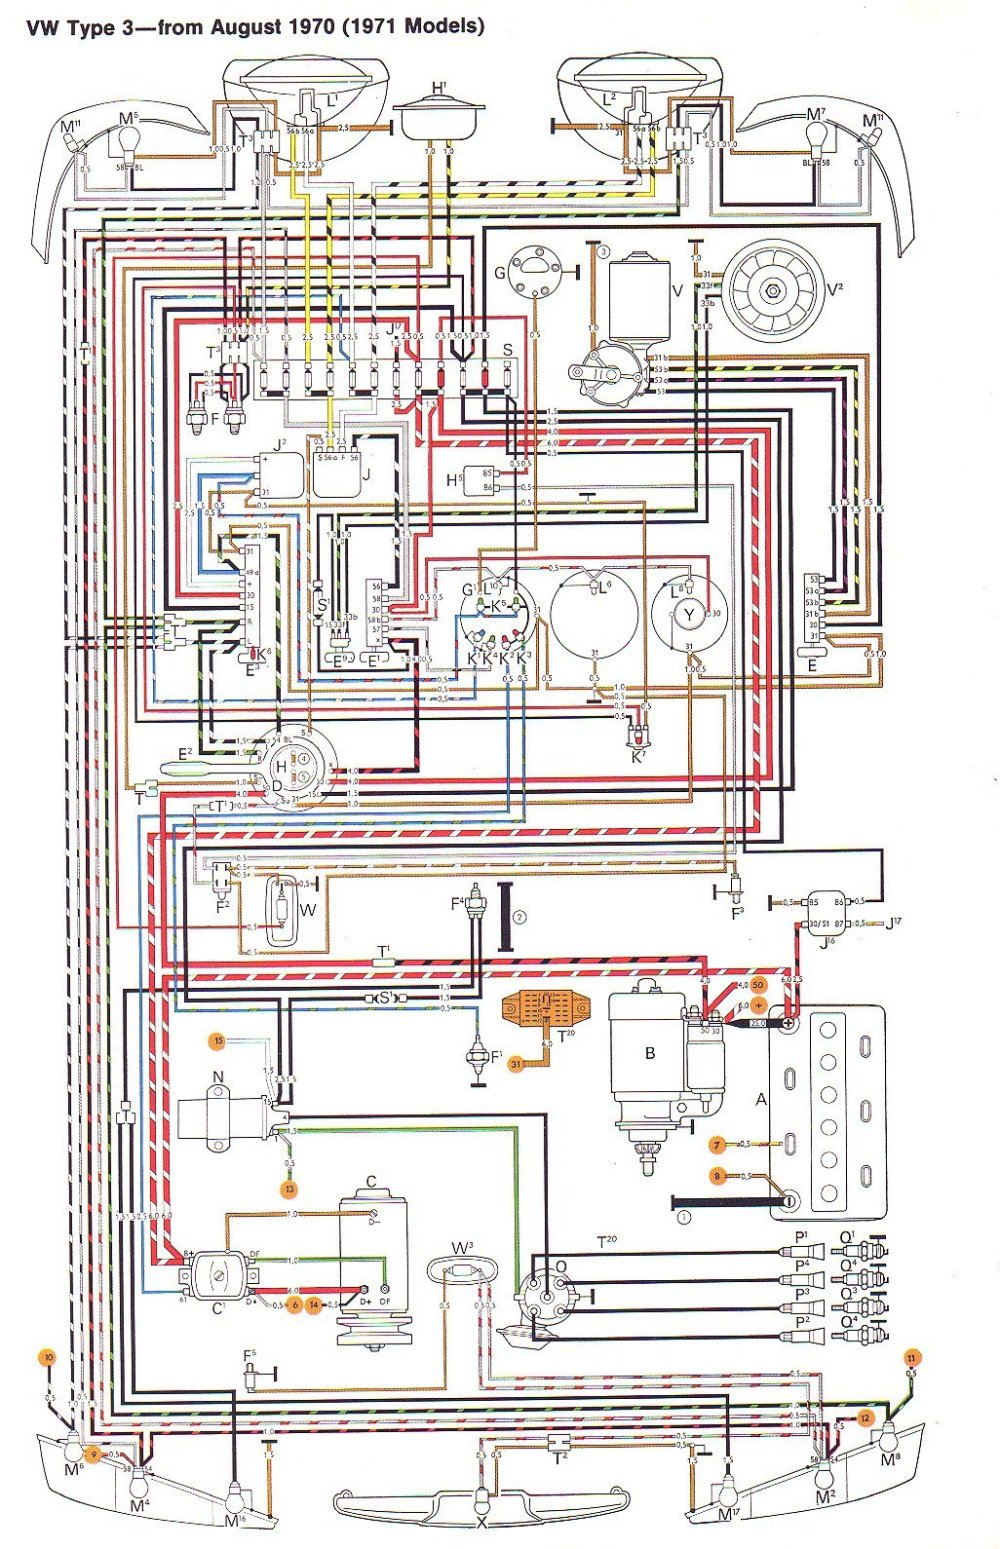 medium resolution of 1988 vw wire diagram wiring diagram dat 1988 vw cabriolet wiring diagram 1988 vw wire diagram